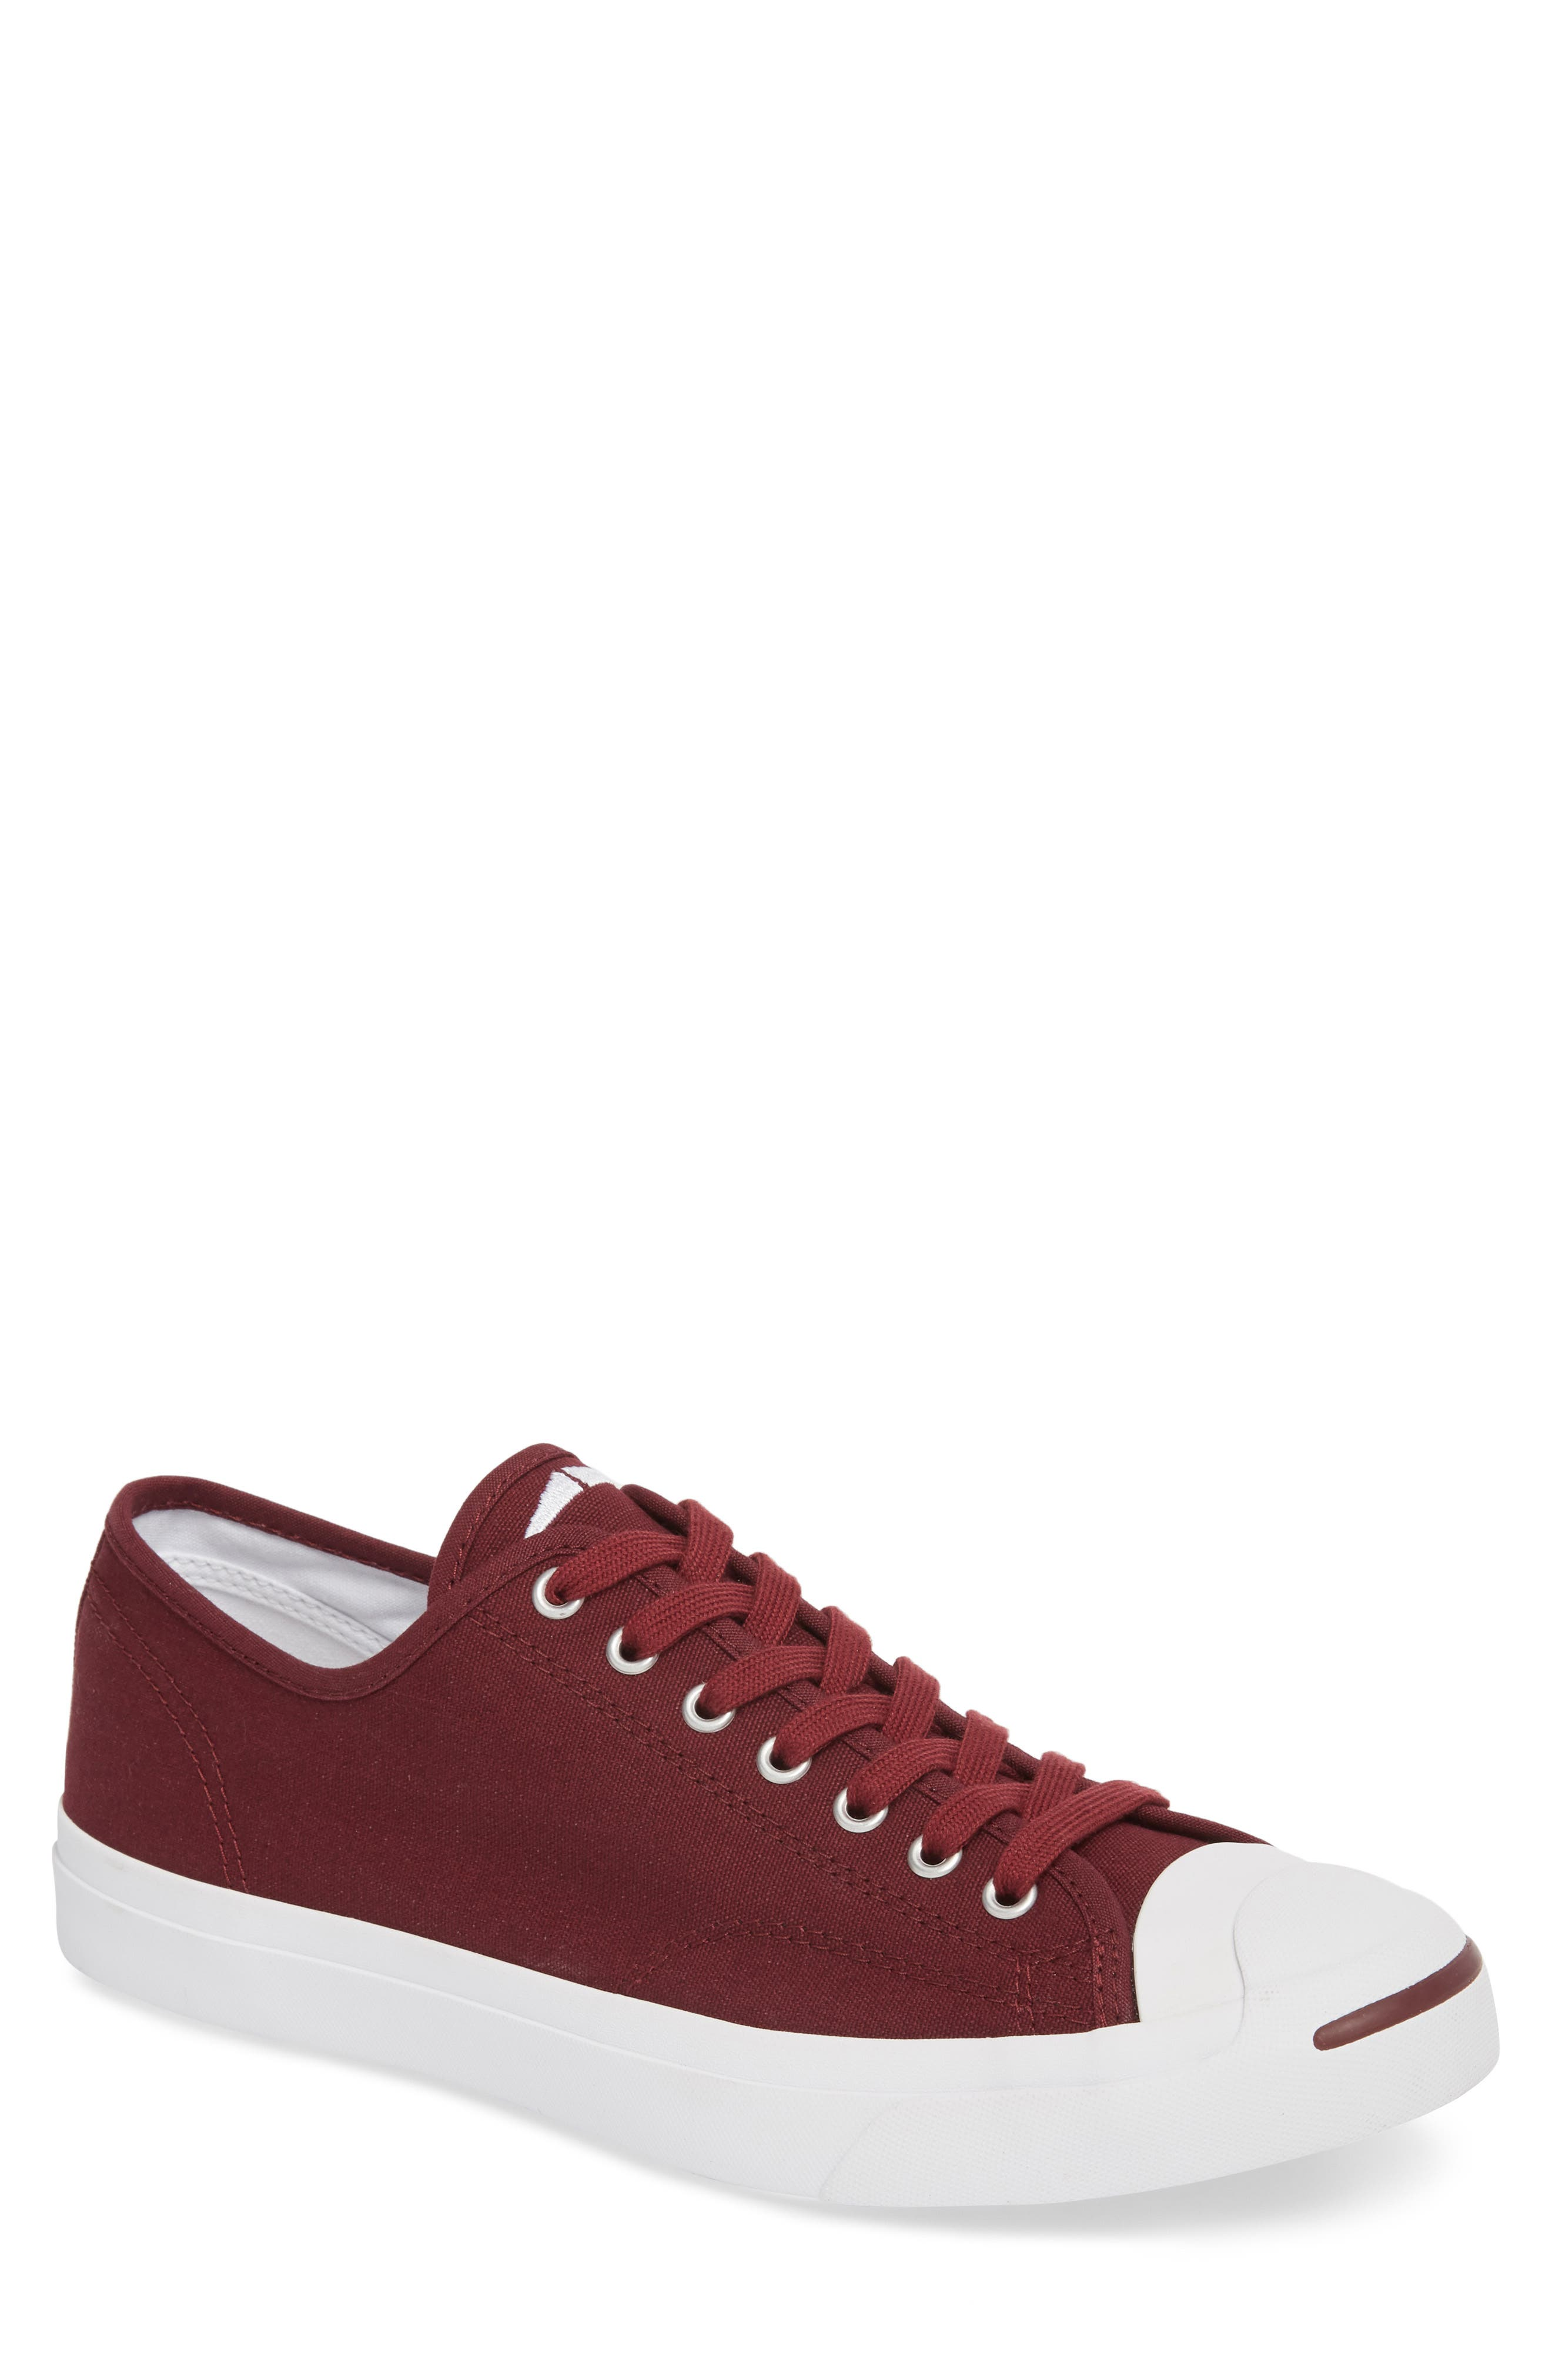 'Jack Purcell' Sneaker,                             Main thumbnail 1, color,                             DARK BURGUNDY CANVAS